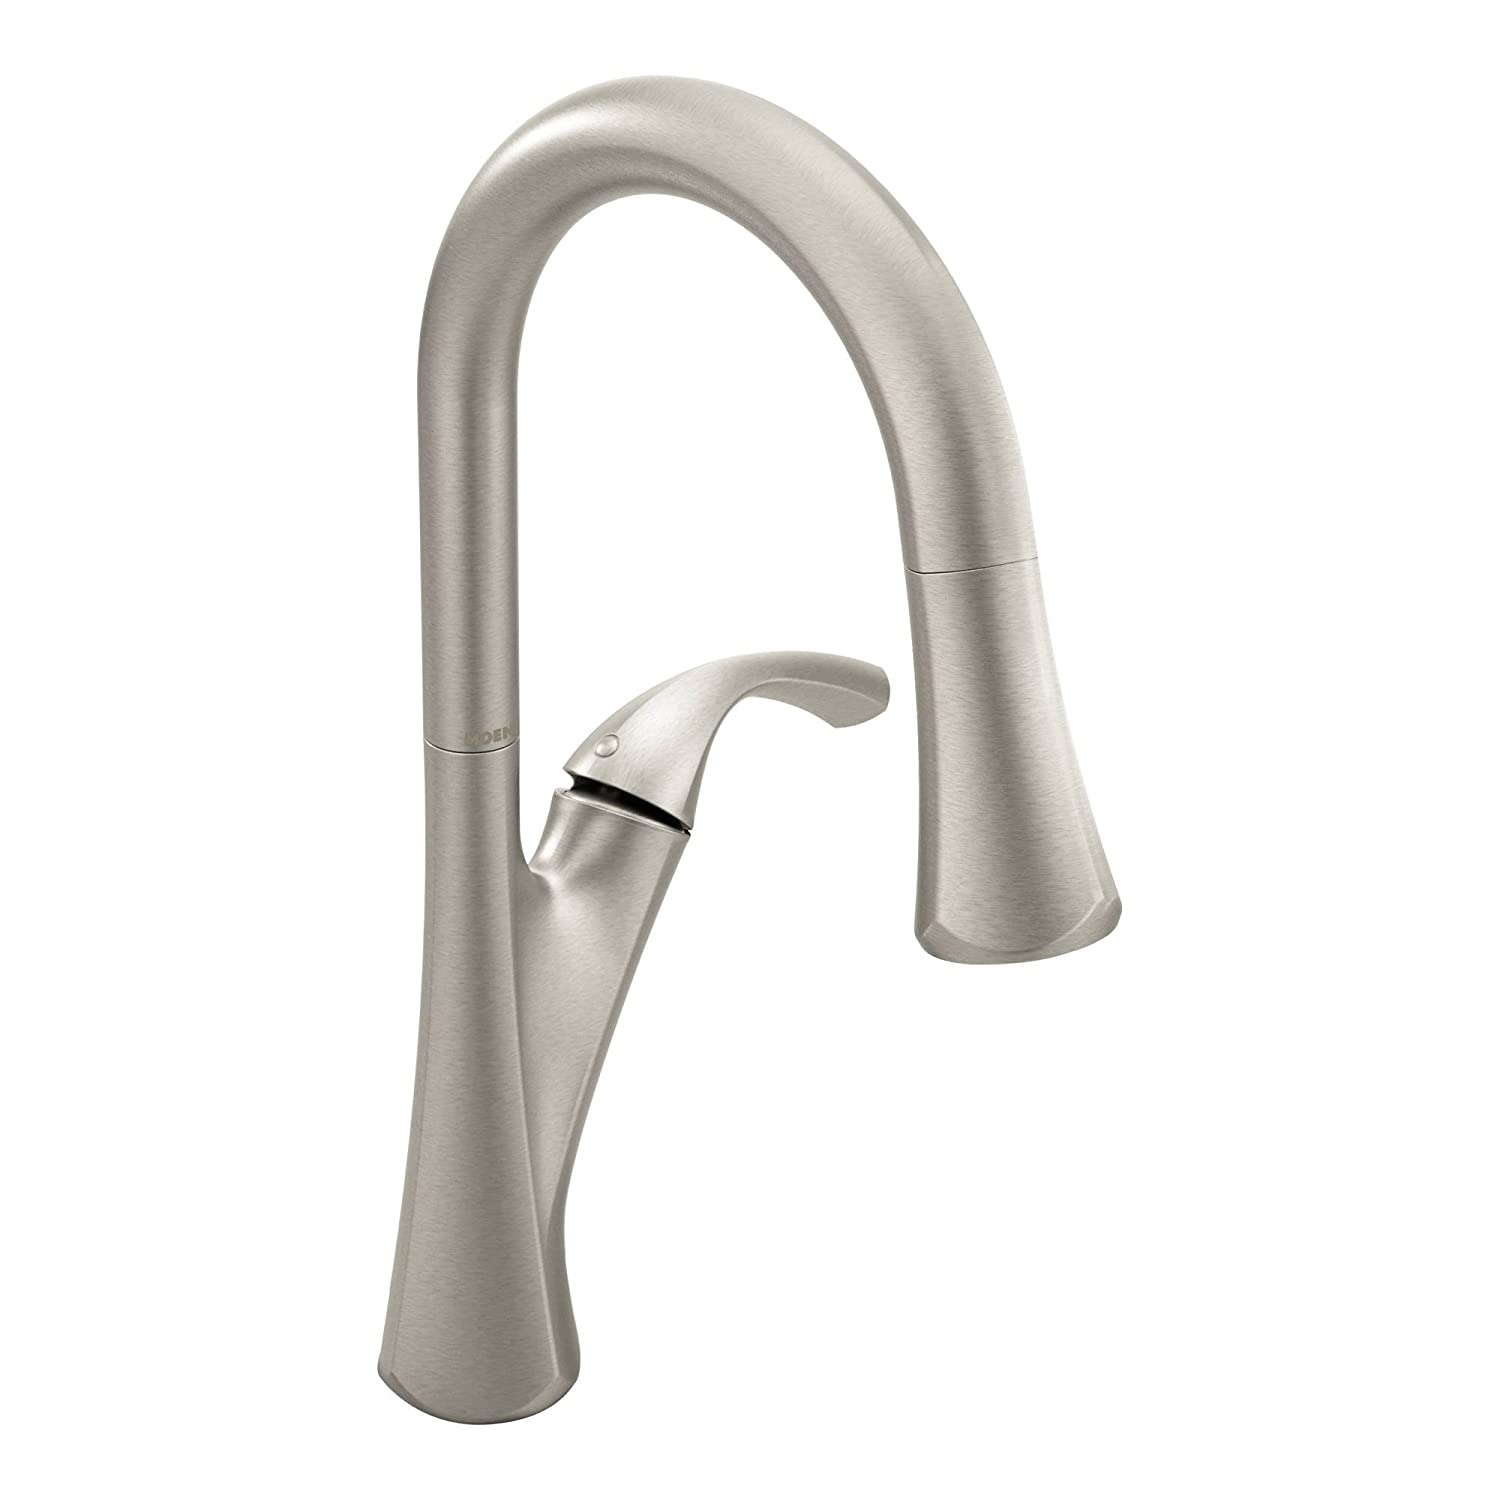 Moen 9124SRS Notch One-Handle Pulldown Kitchen Faucet Featuring Power Boost and Reflex, Spot Resist Stainless